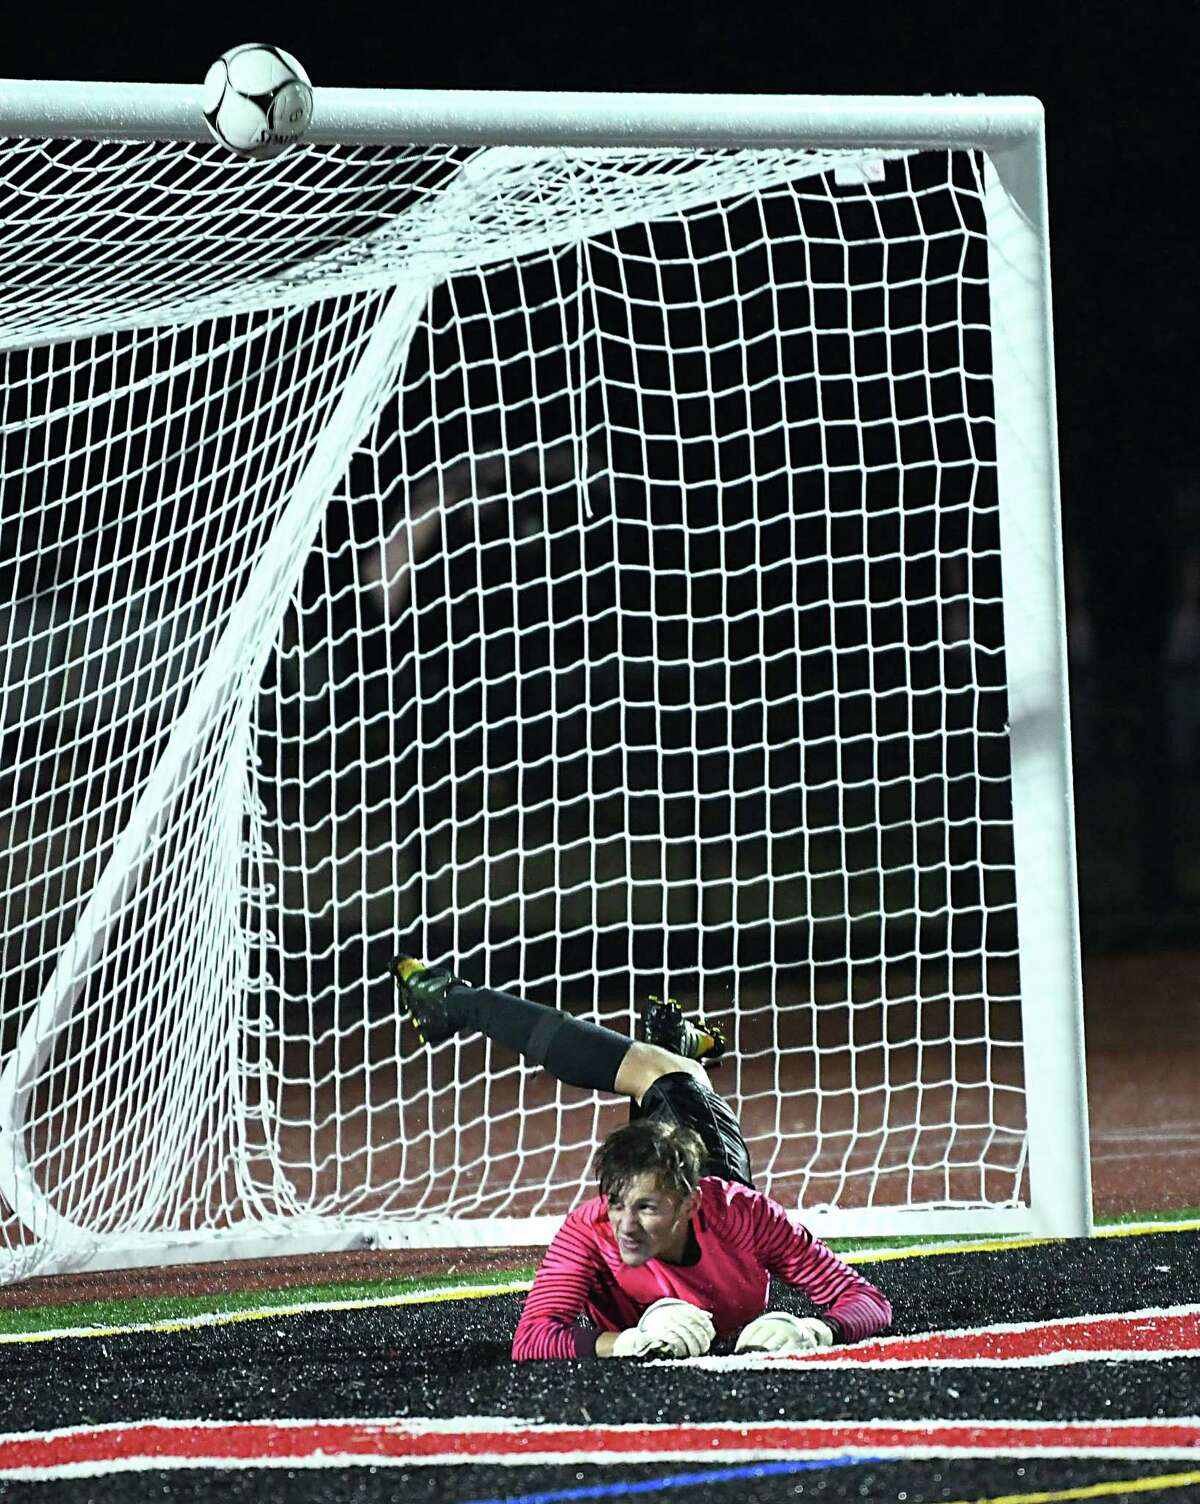 Colonie goal keeper Jonas Clapper saves the ball from going into the net during a soccer game against Mechanicville on Monday, Oct. 1, 2018 in Mechanicville, N.Y. (Lori Van Buren/Times Union)